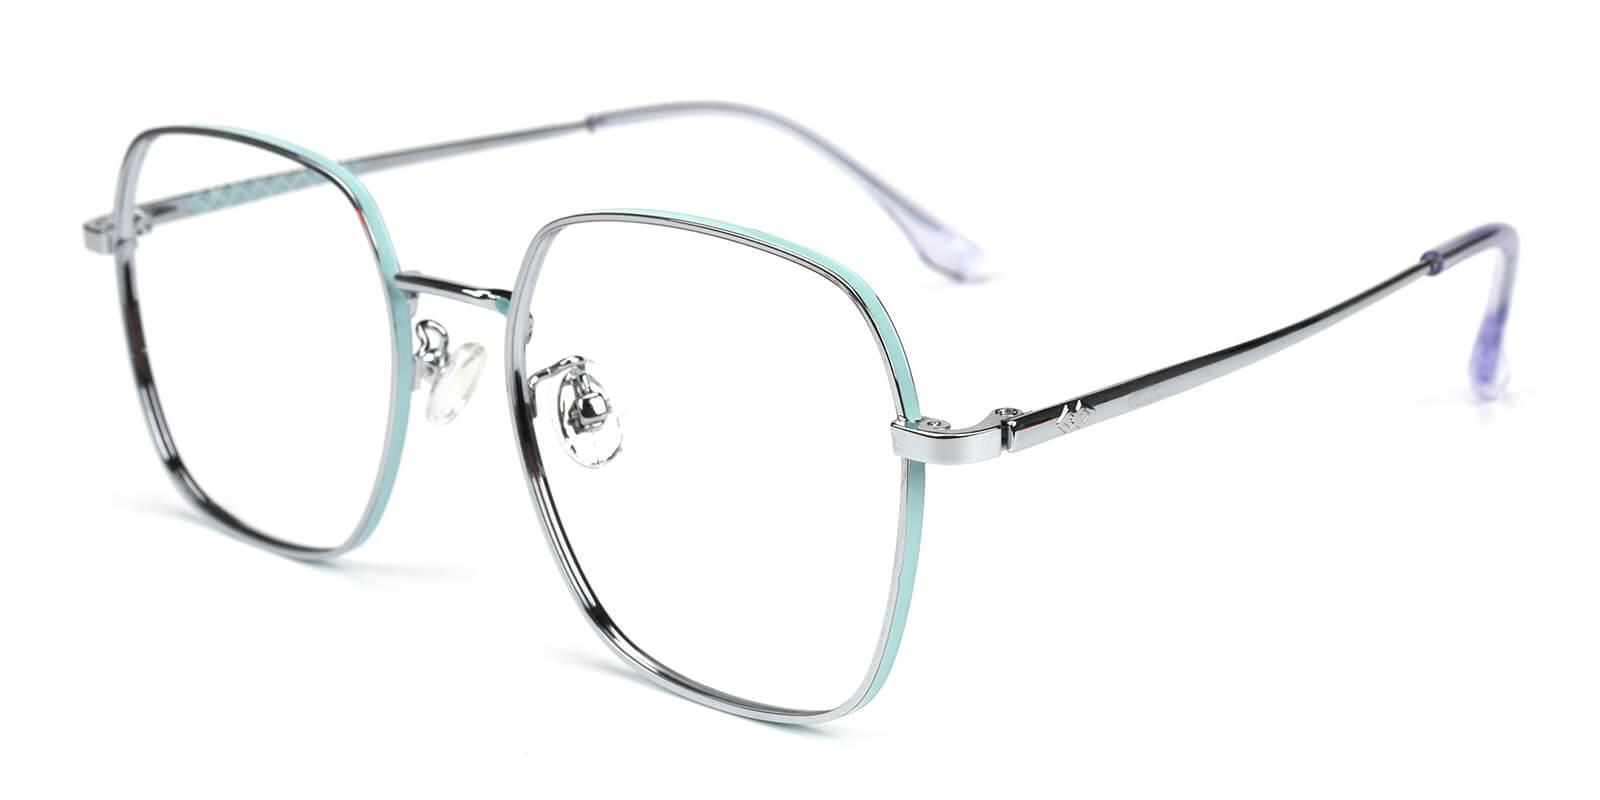 Thelma Silver Metal Eyeglasses , NosePads , SpringHinges Frames from ABBE Glasses